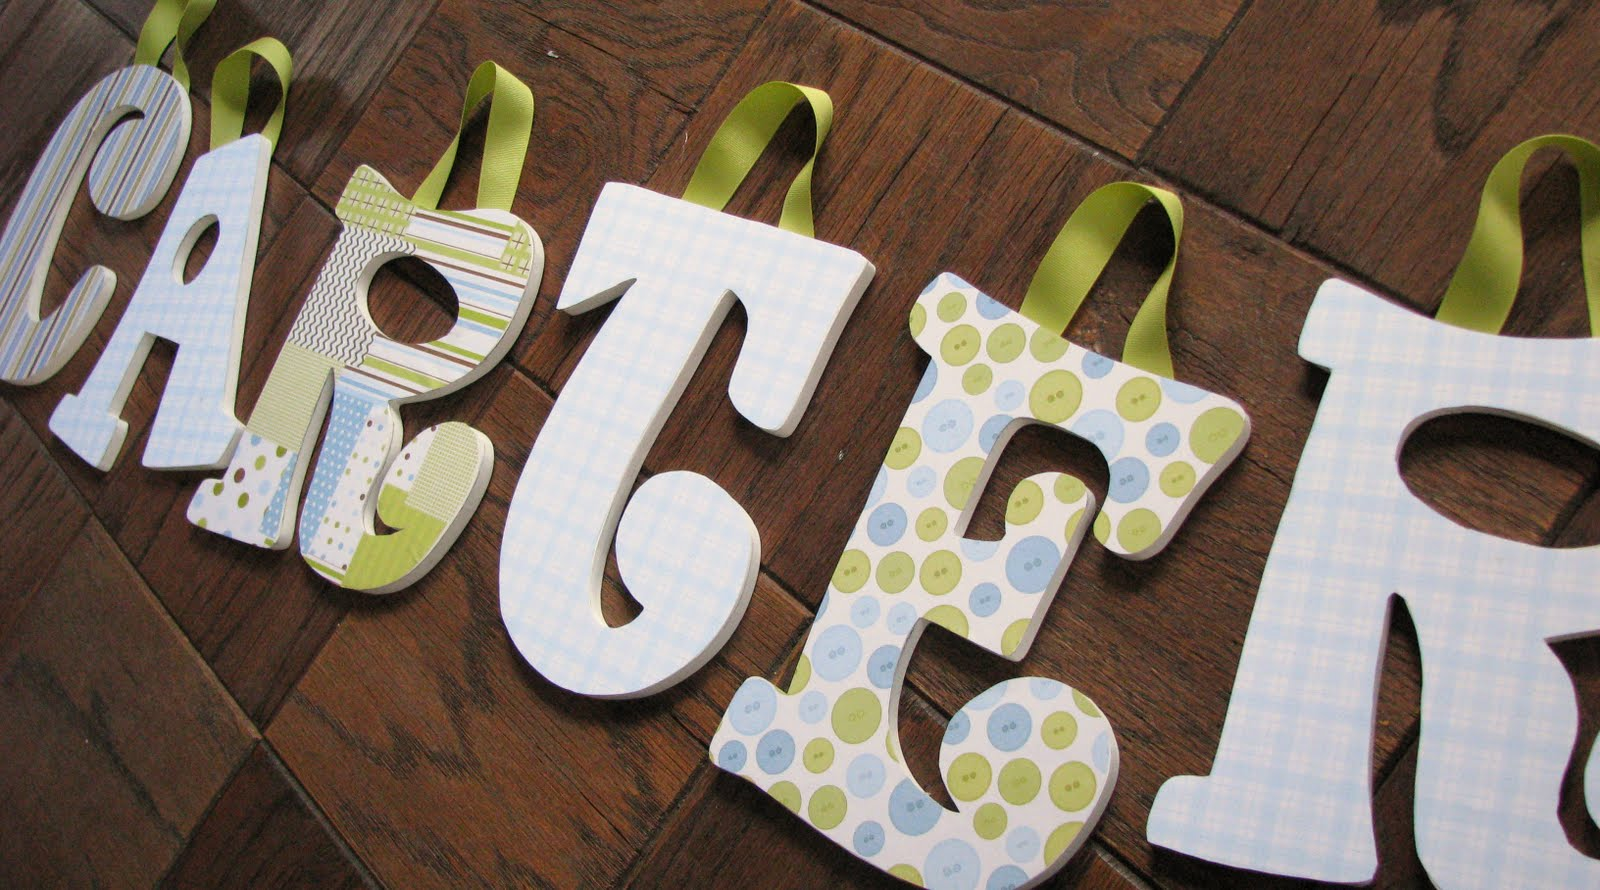 Ooh Wee Designs Wooden Letters